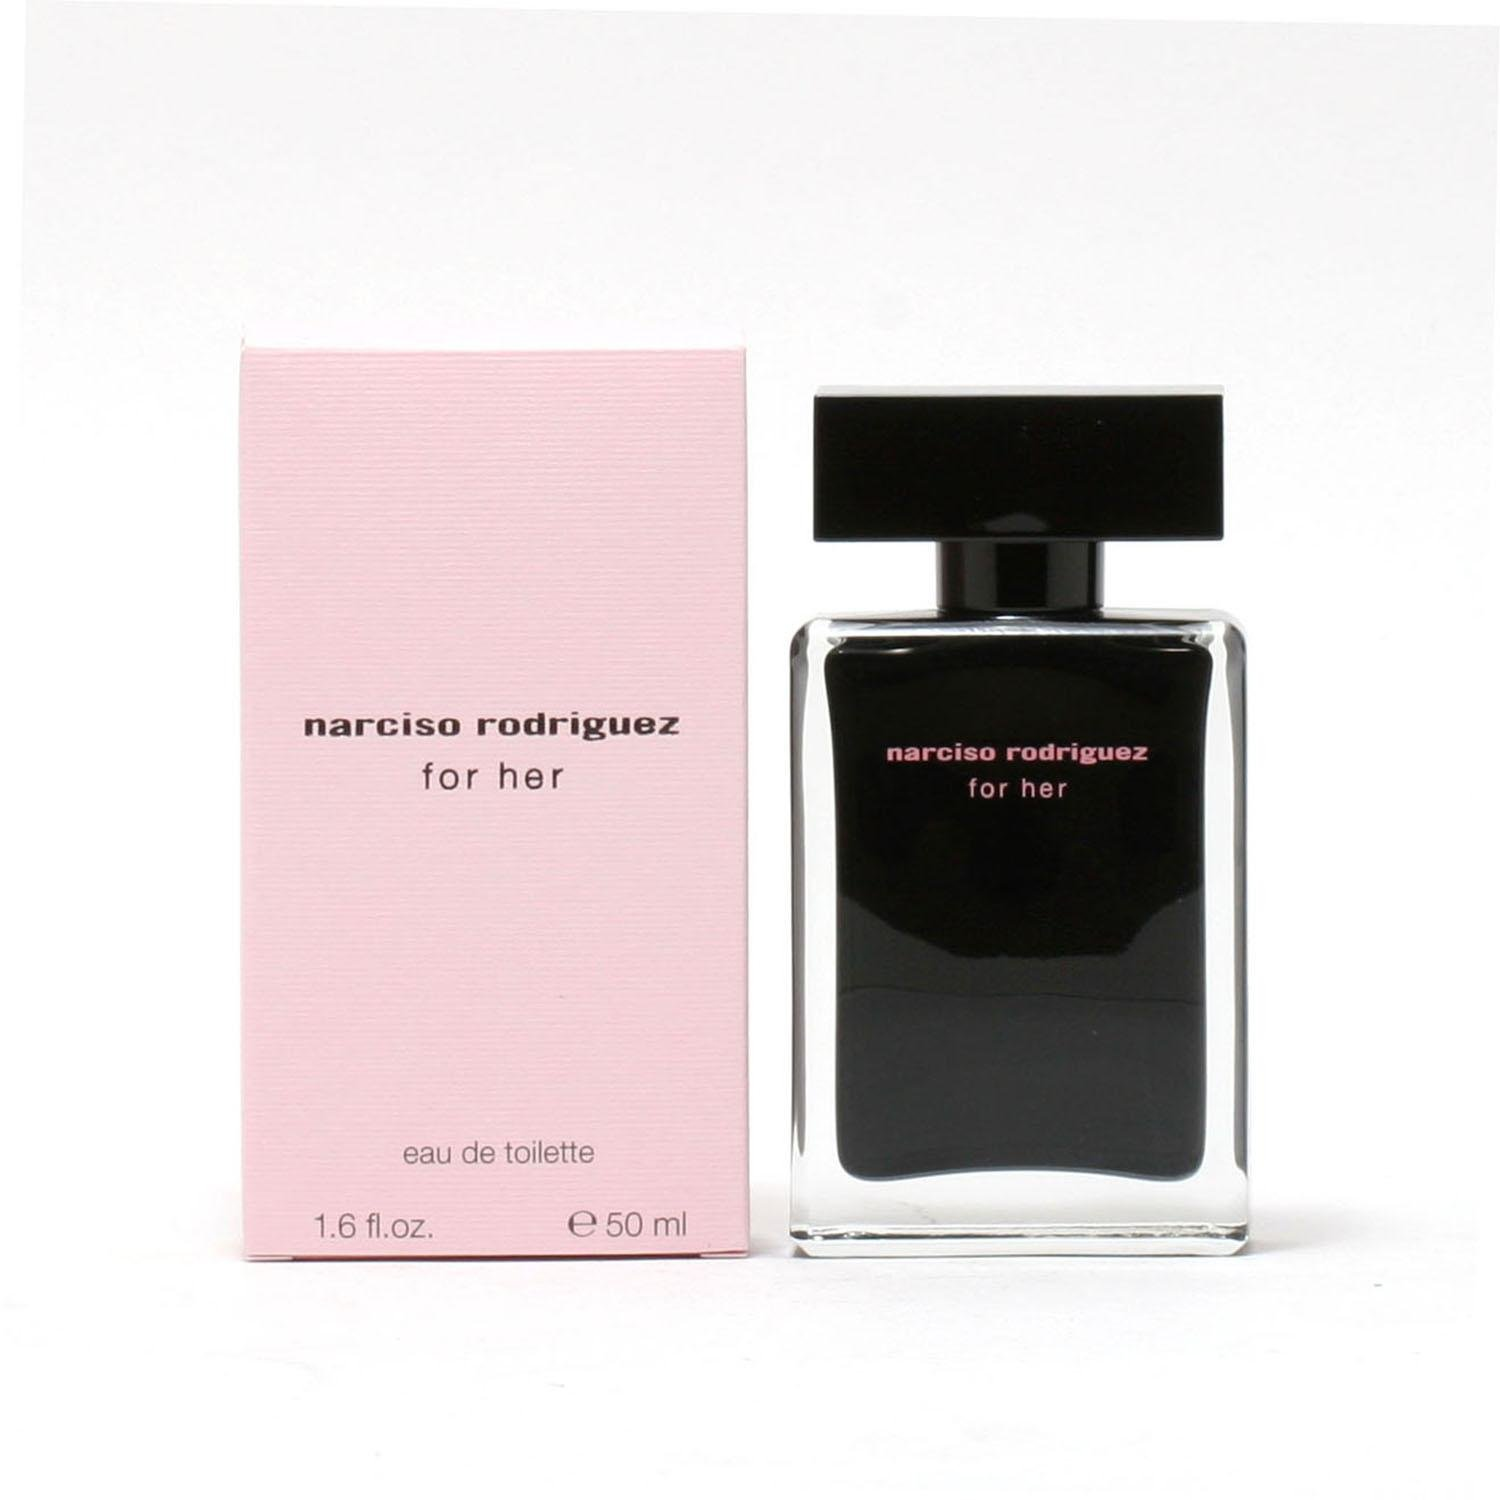 narciso rodriguez her eau de toilette 50 ml ebay. Black Bedroom Furniture Sets. Home Design Ideas